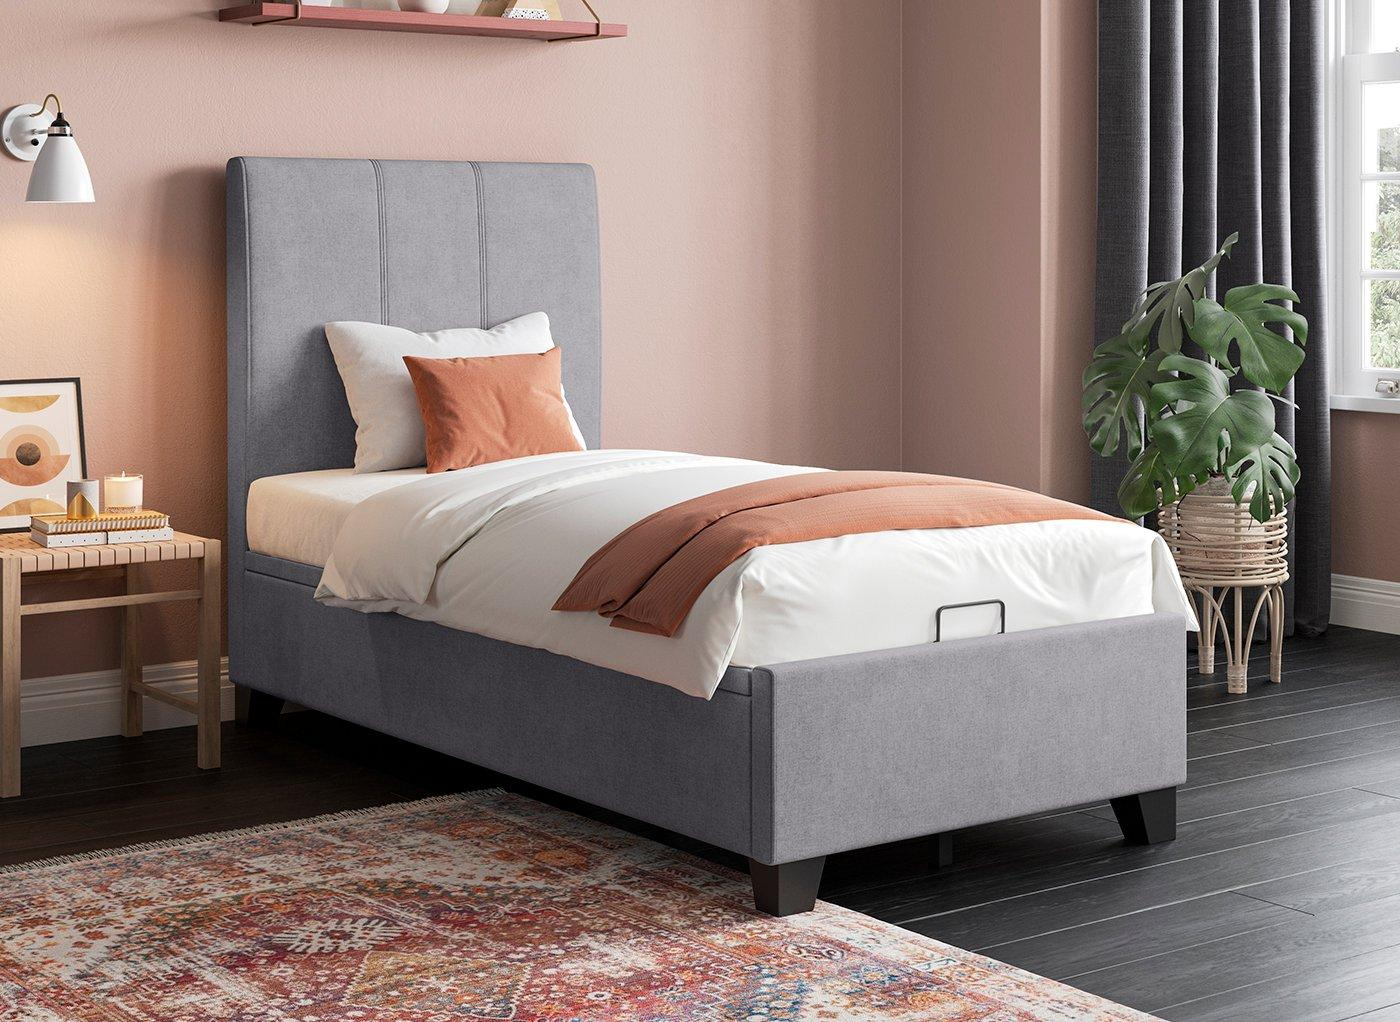 francis-upholstered-ottoman-bed-frame